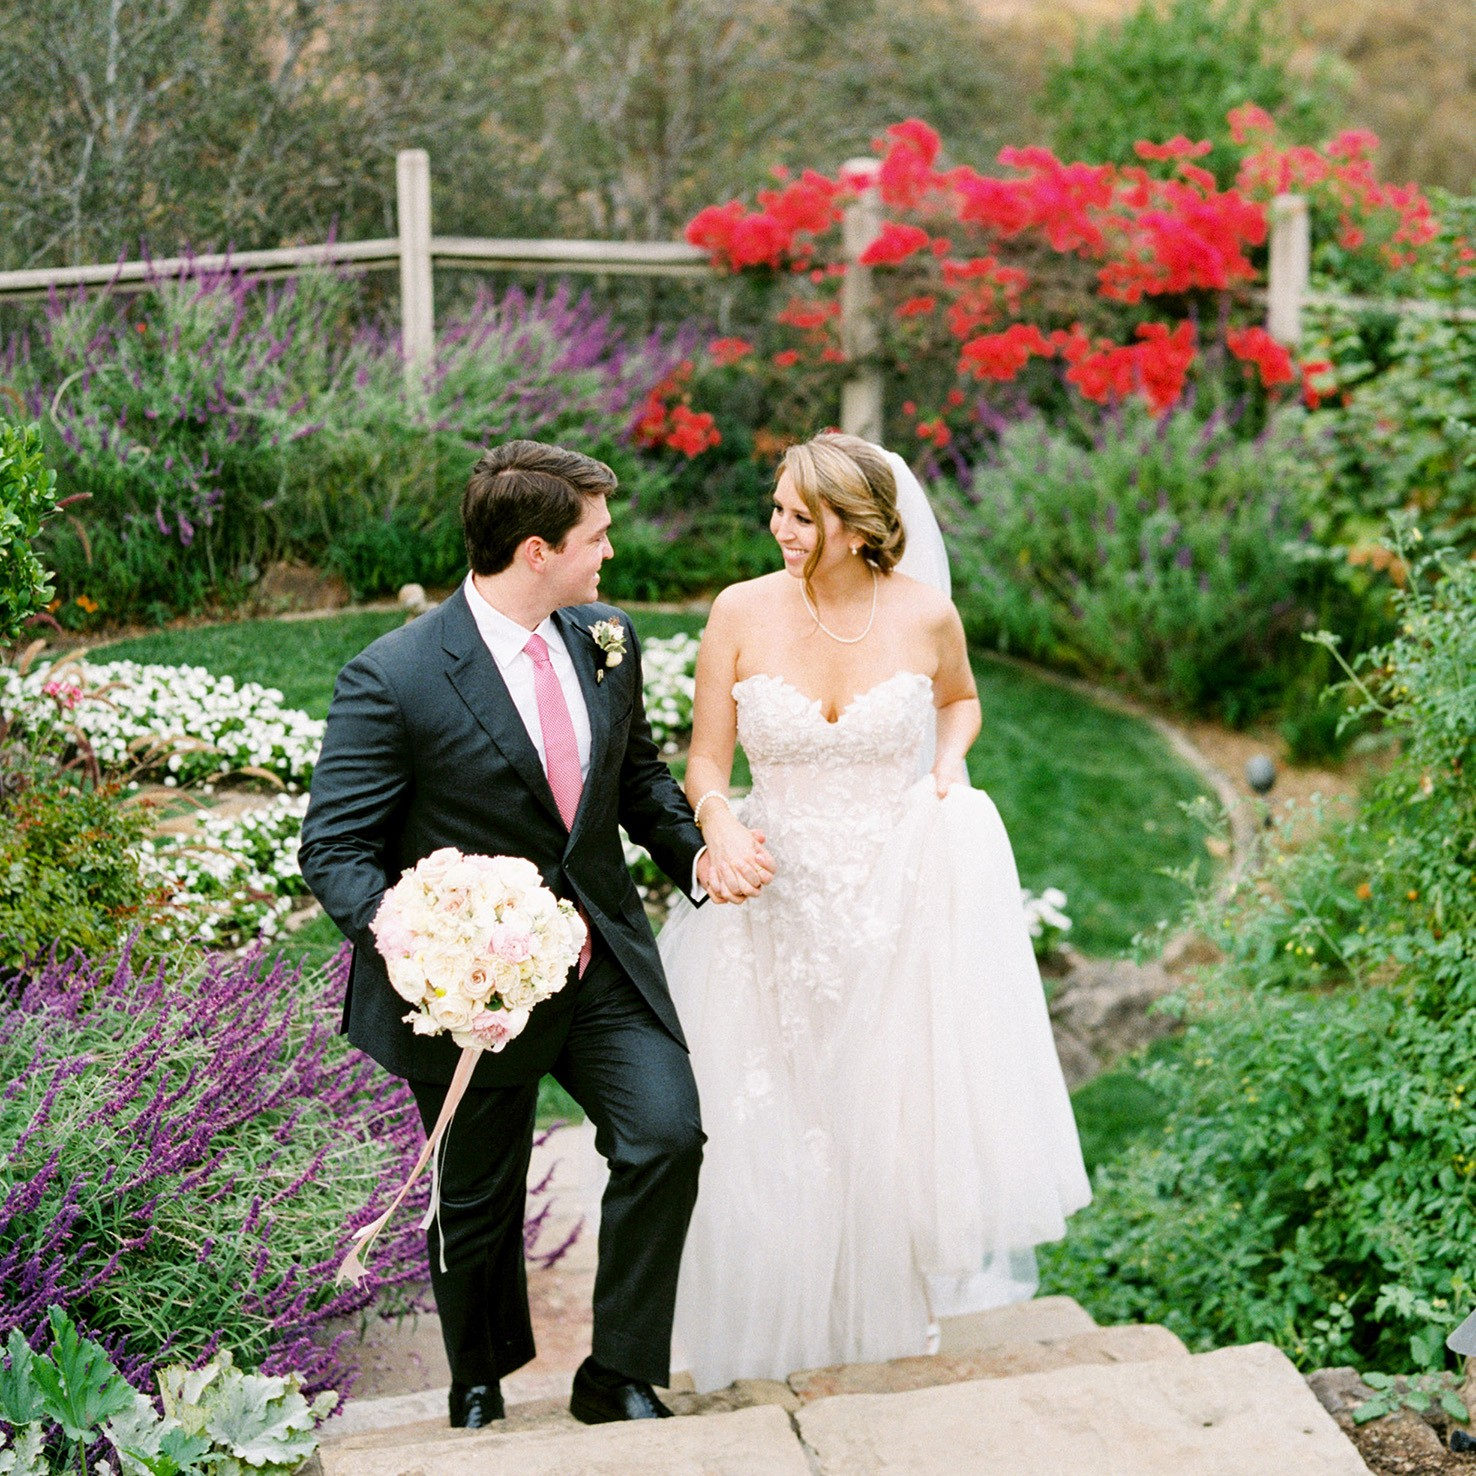 Real Weddings: Chelsea and Barrett Meister's 2020 Backyard Wedding